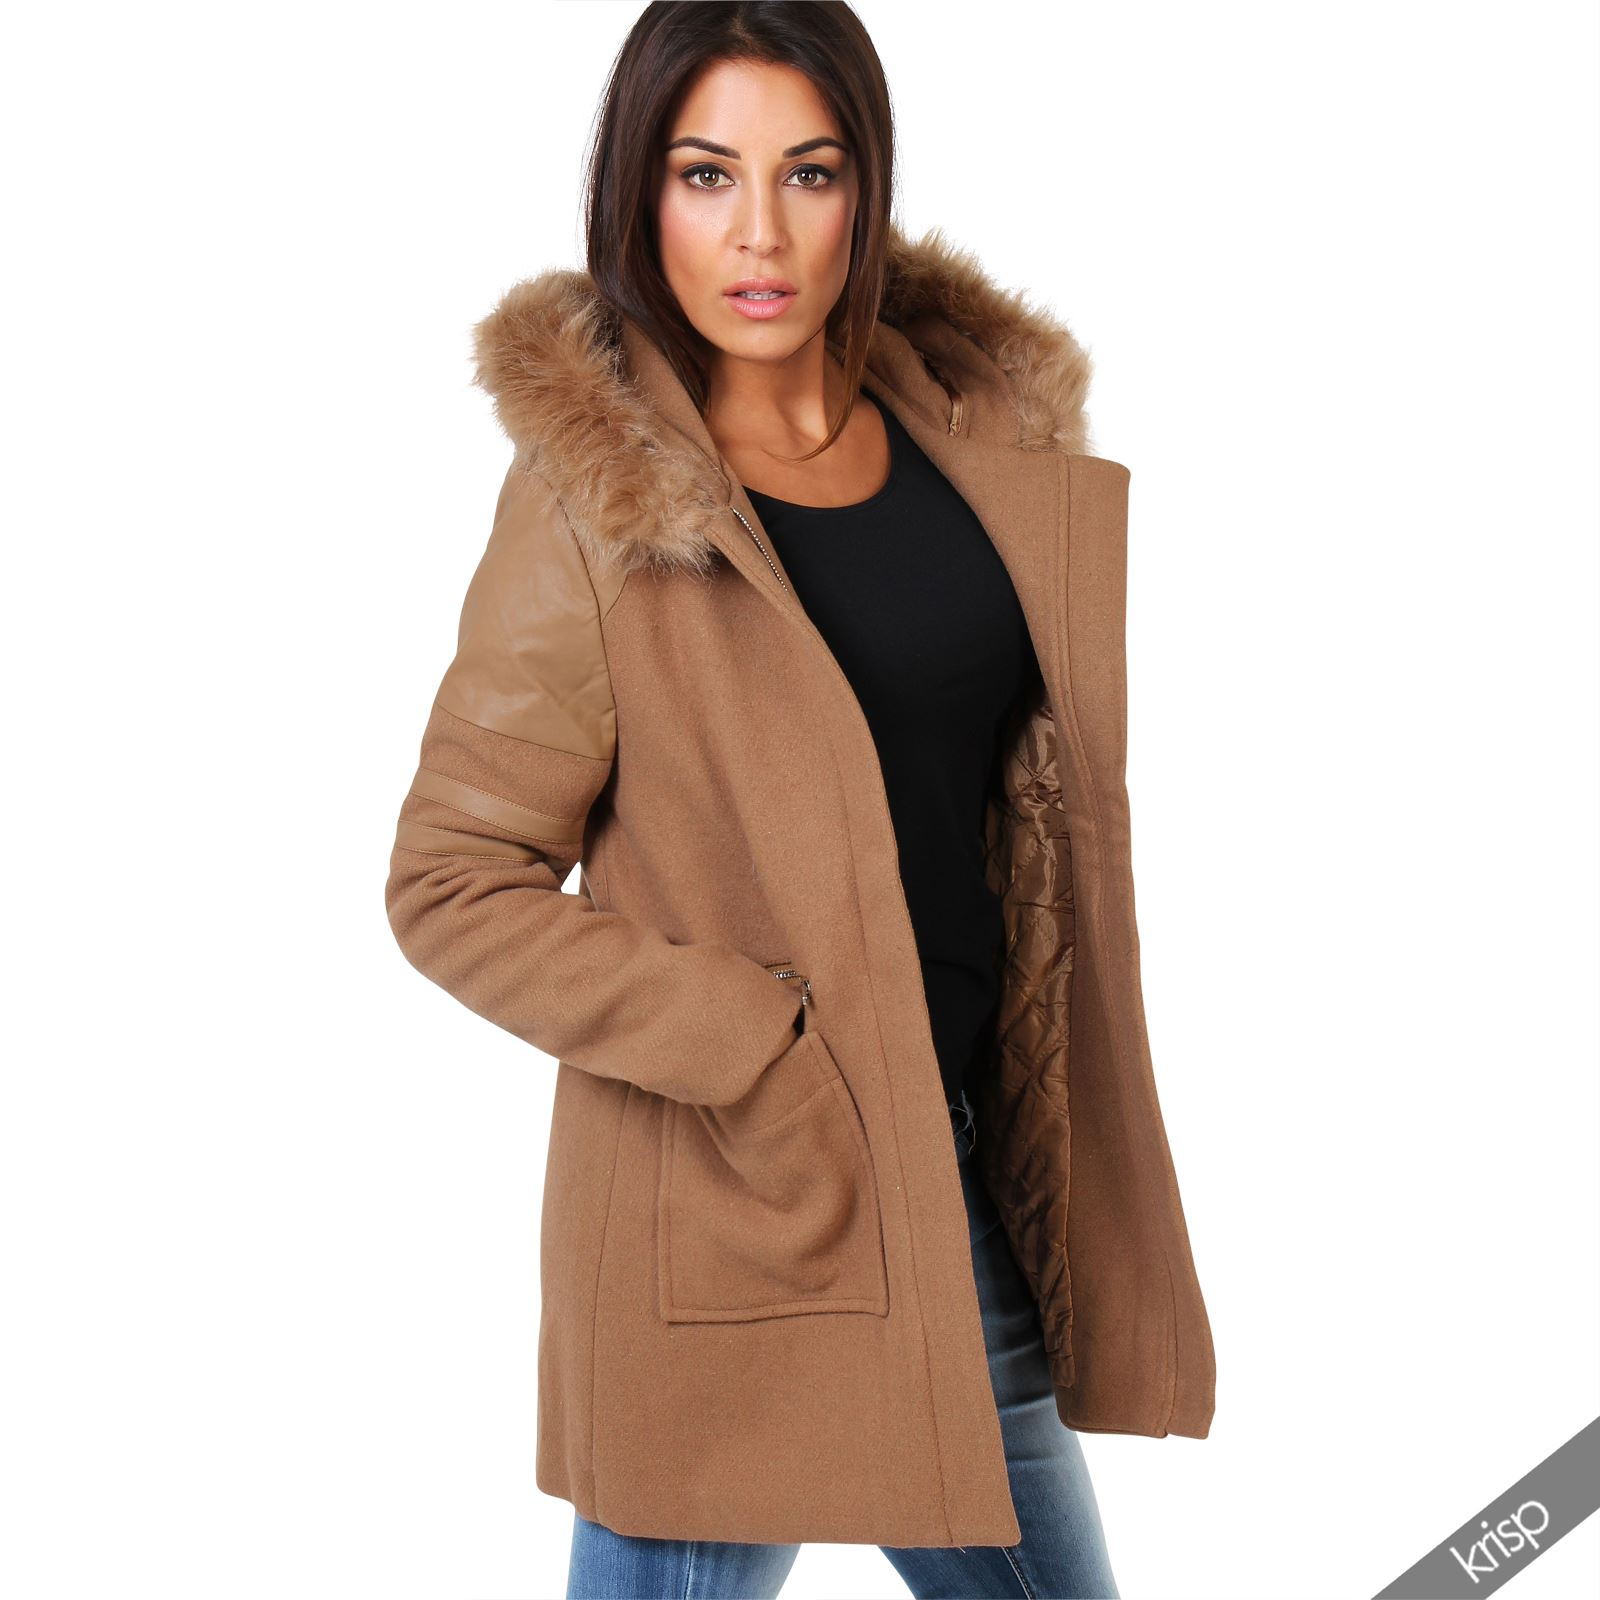 Women's designer coat sale | Shop luxury ladies coats in classic & contemporary styles & lengths. Buy your favorite fashion brands at discount prices at THE OUTNET.